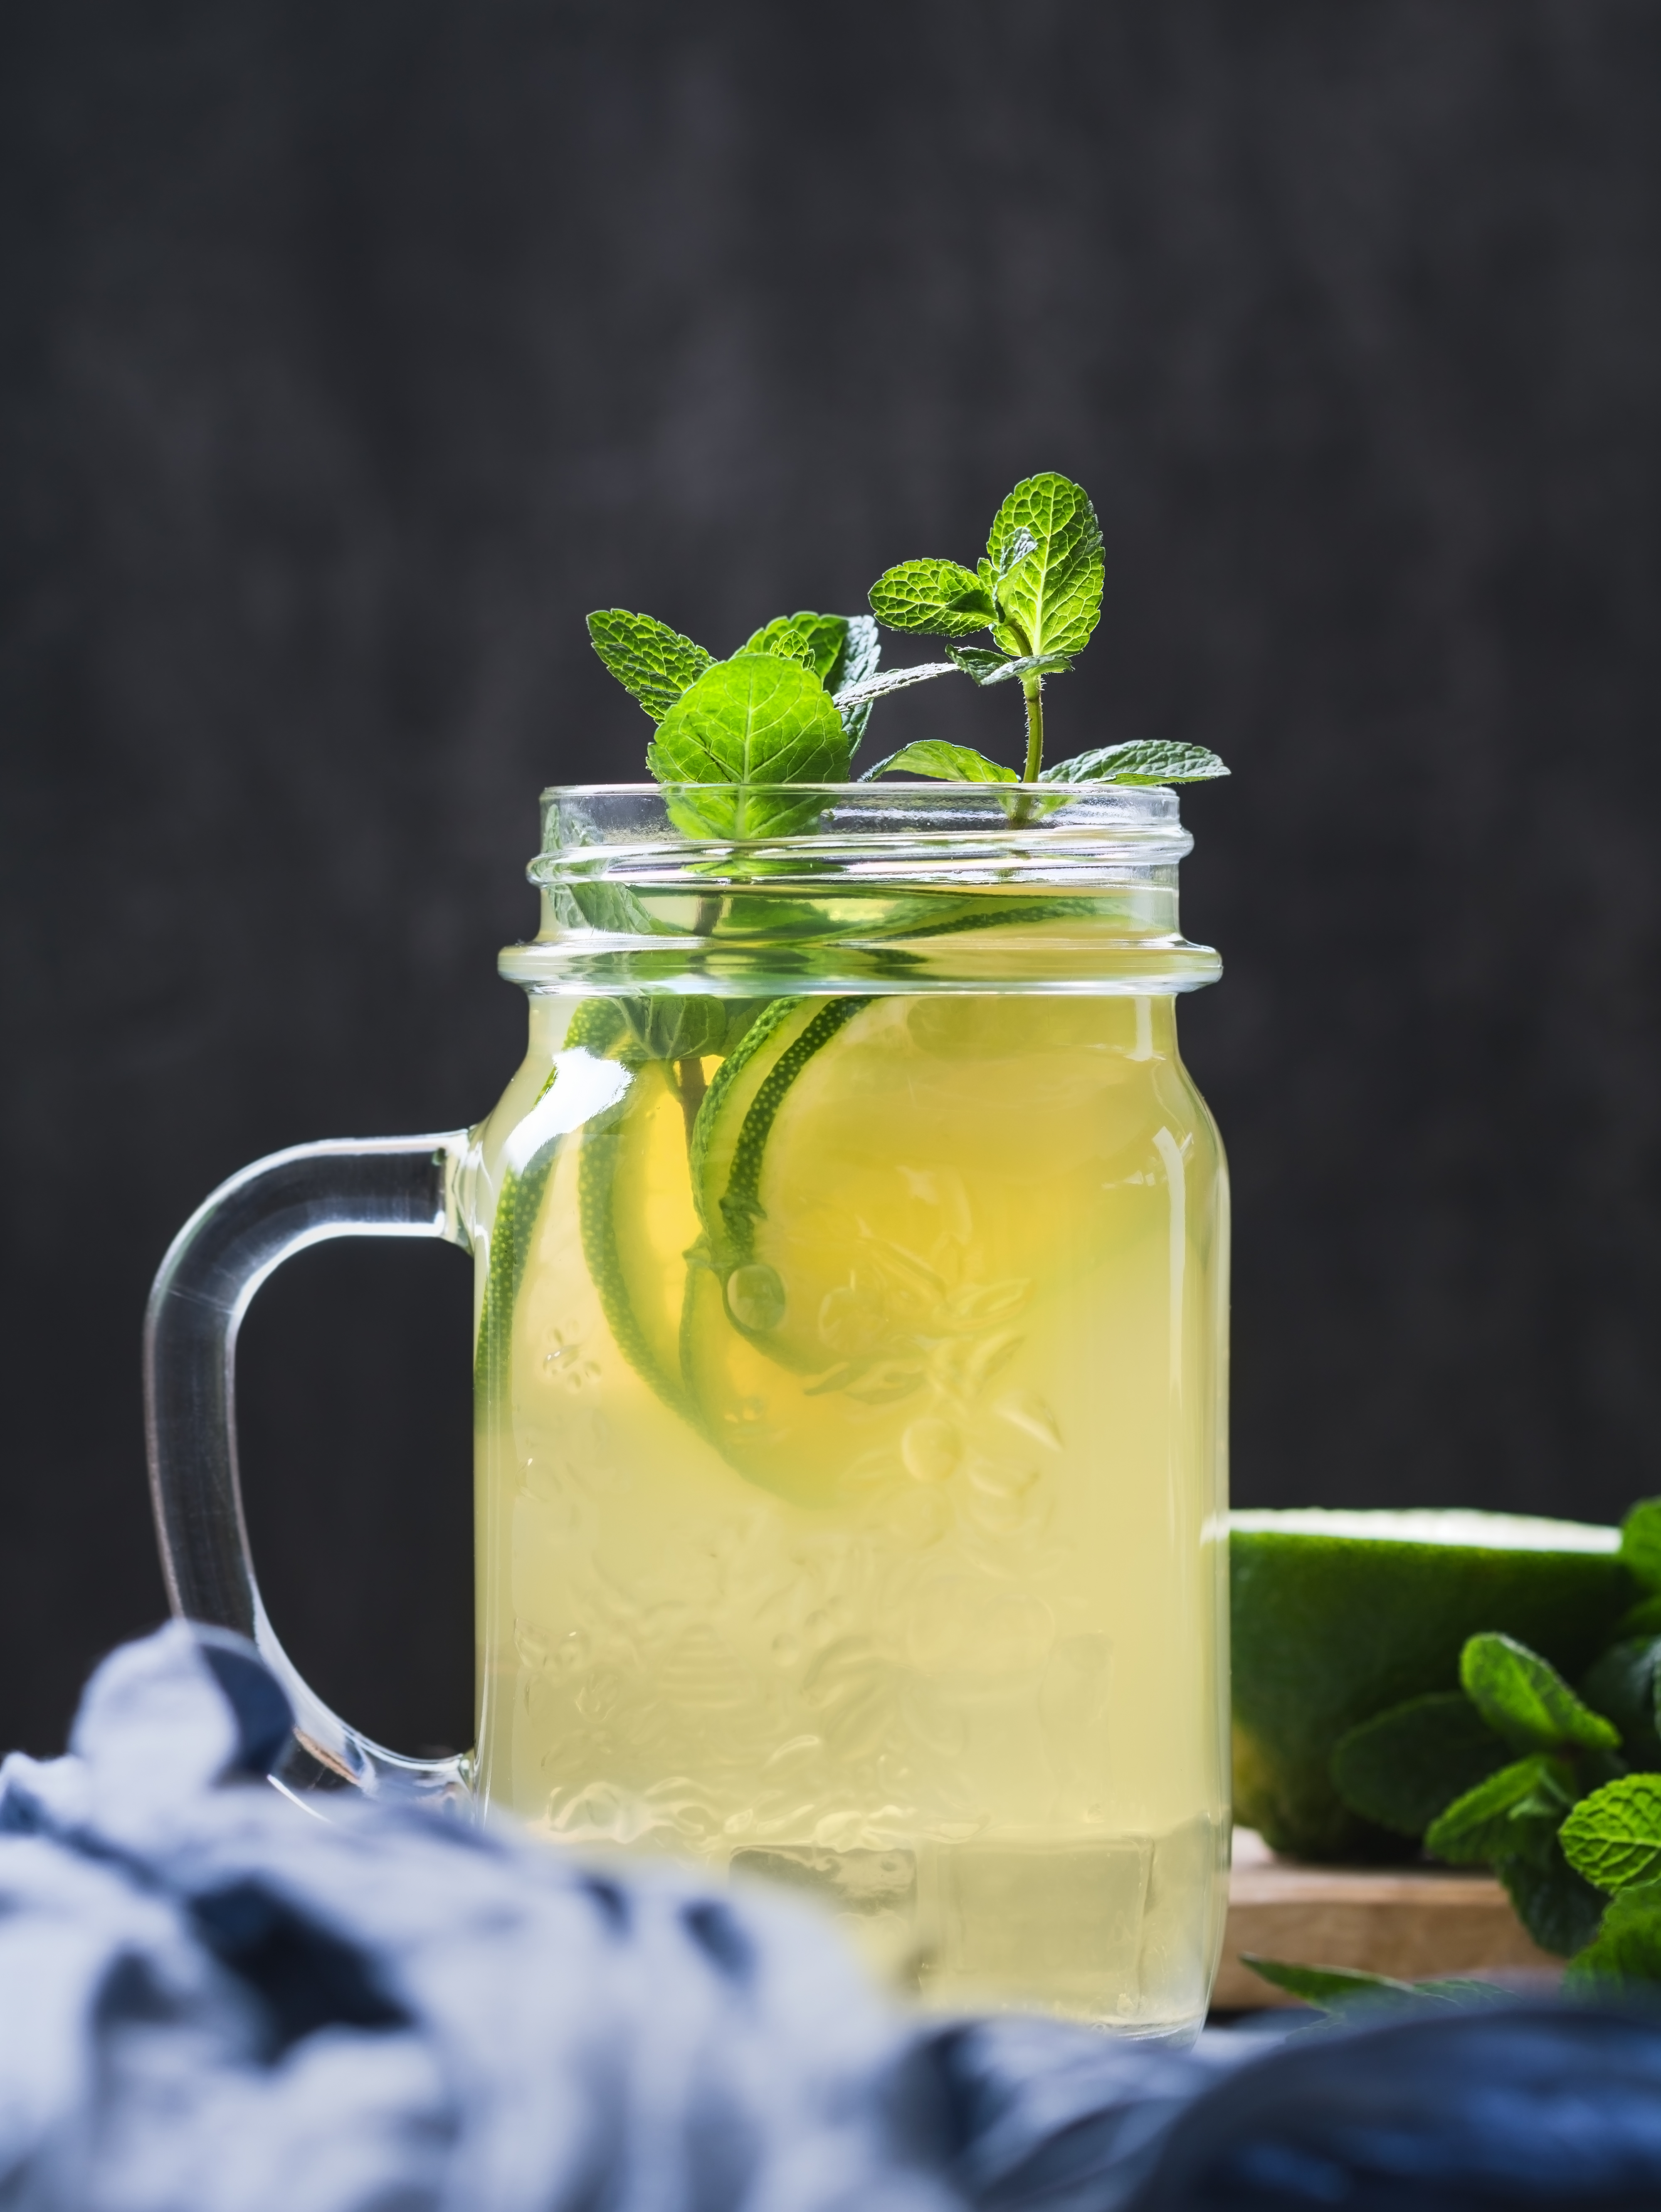 Cold beverage mojito in a glass jar with lime and mint on a table against black wall.